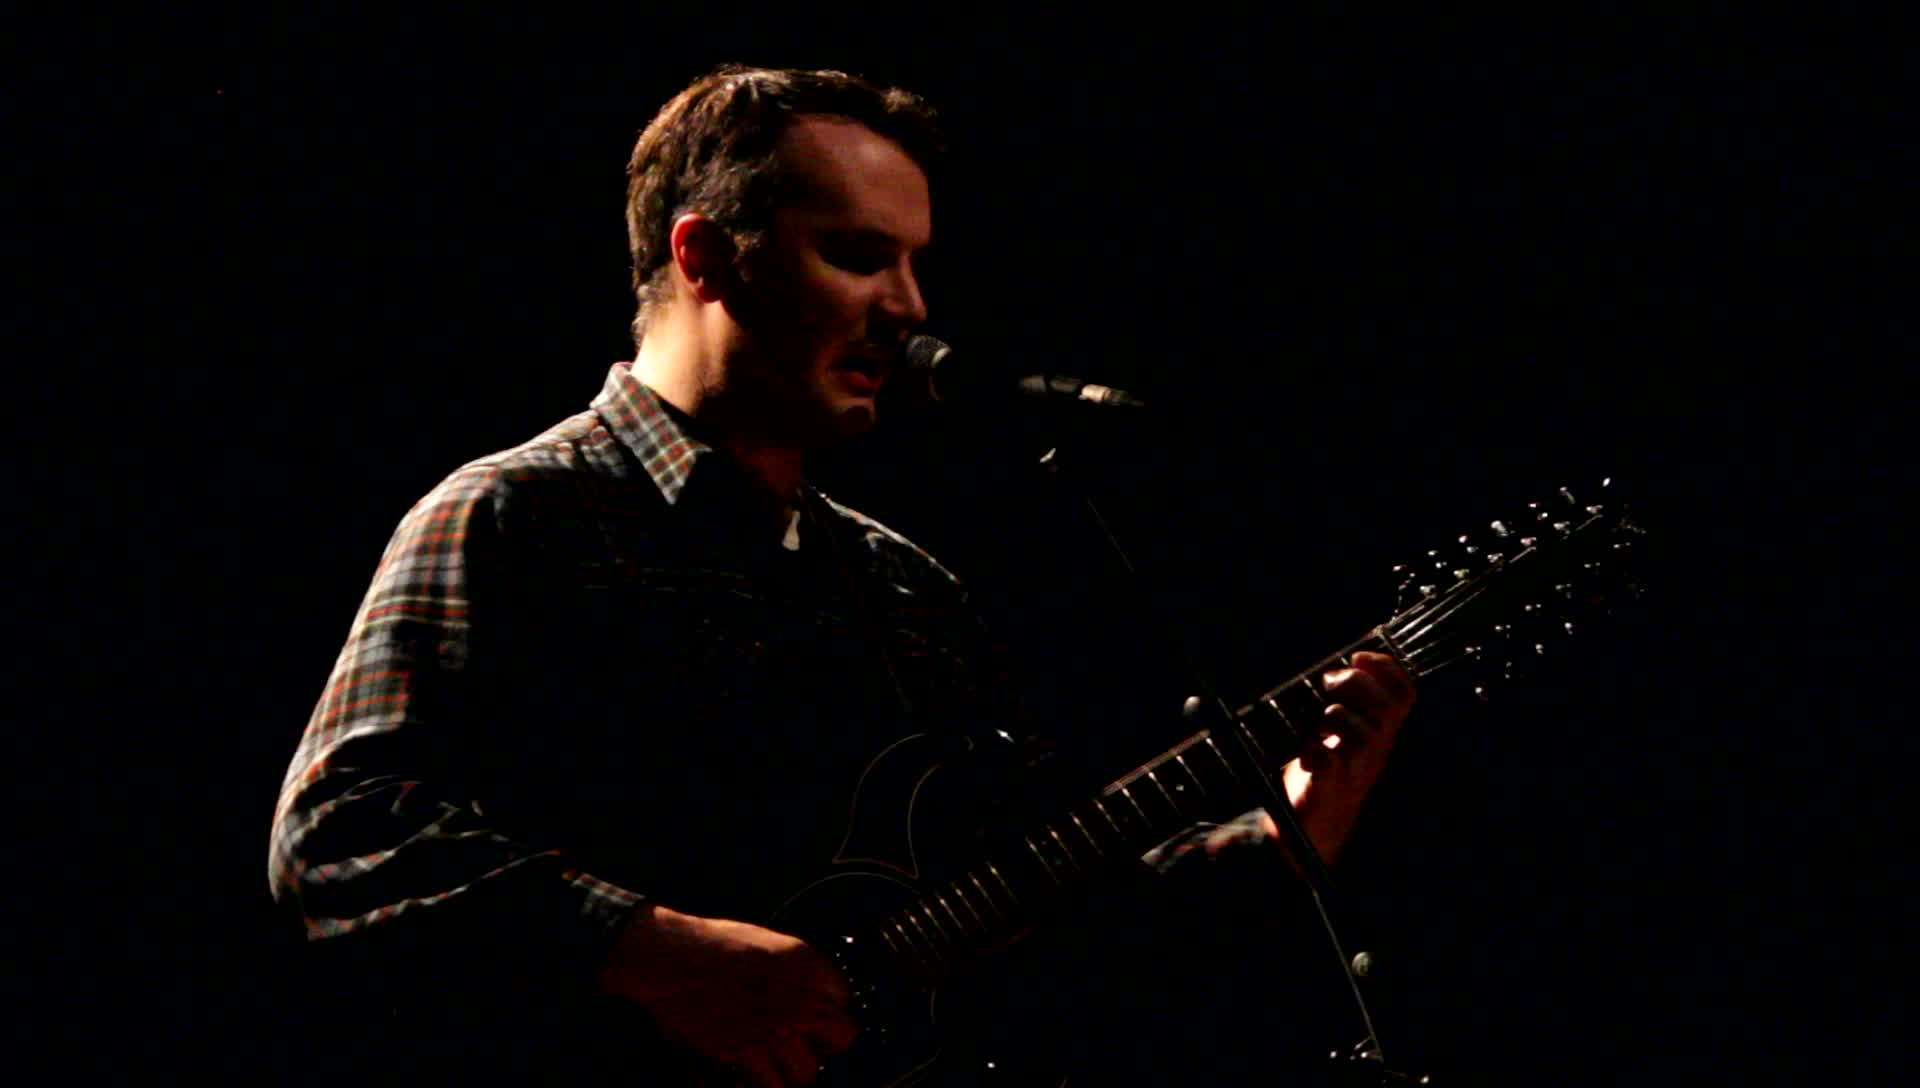 mount eerie band pop groupe lyon live concert